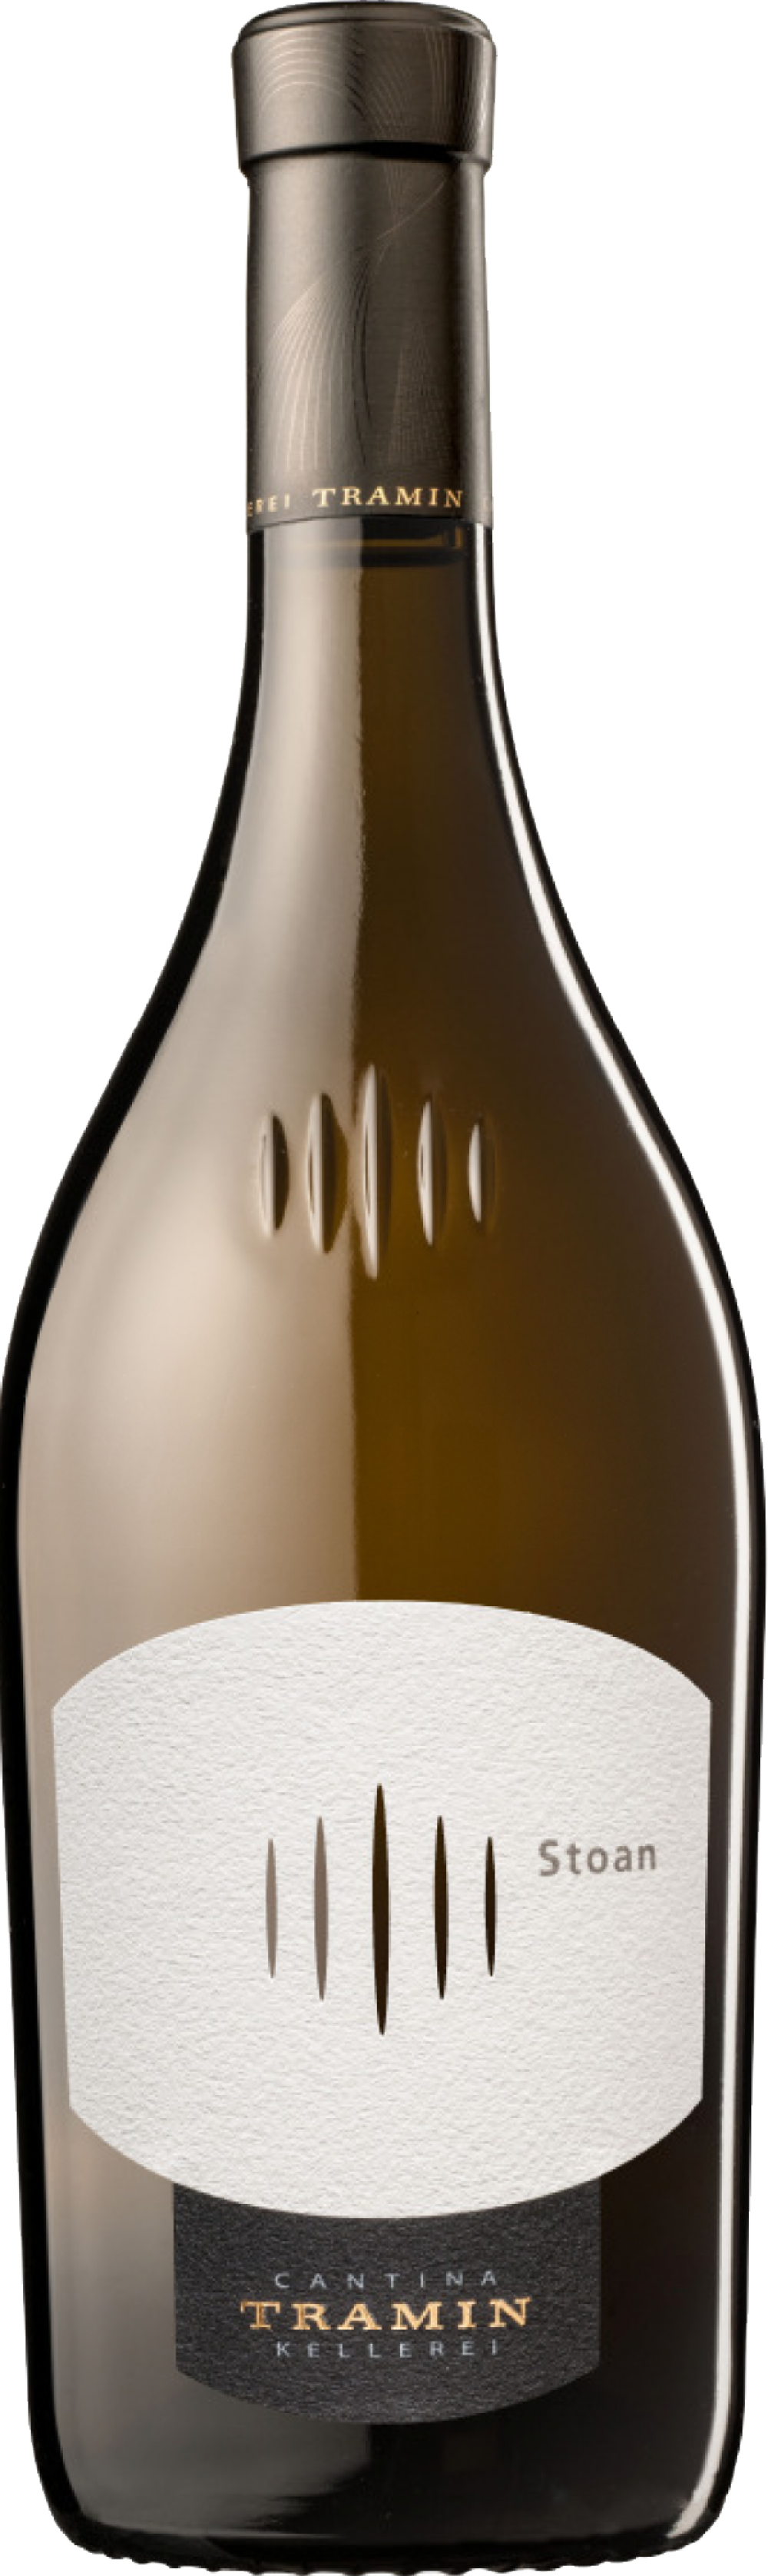 files/images/wines/Italy/cantina-tramin/IT1462.png